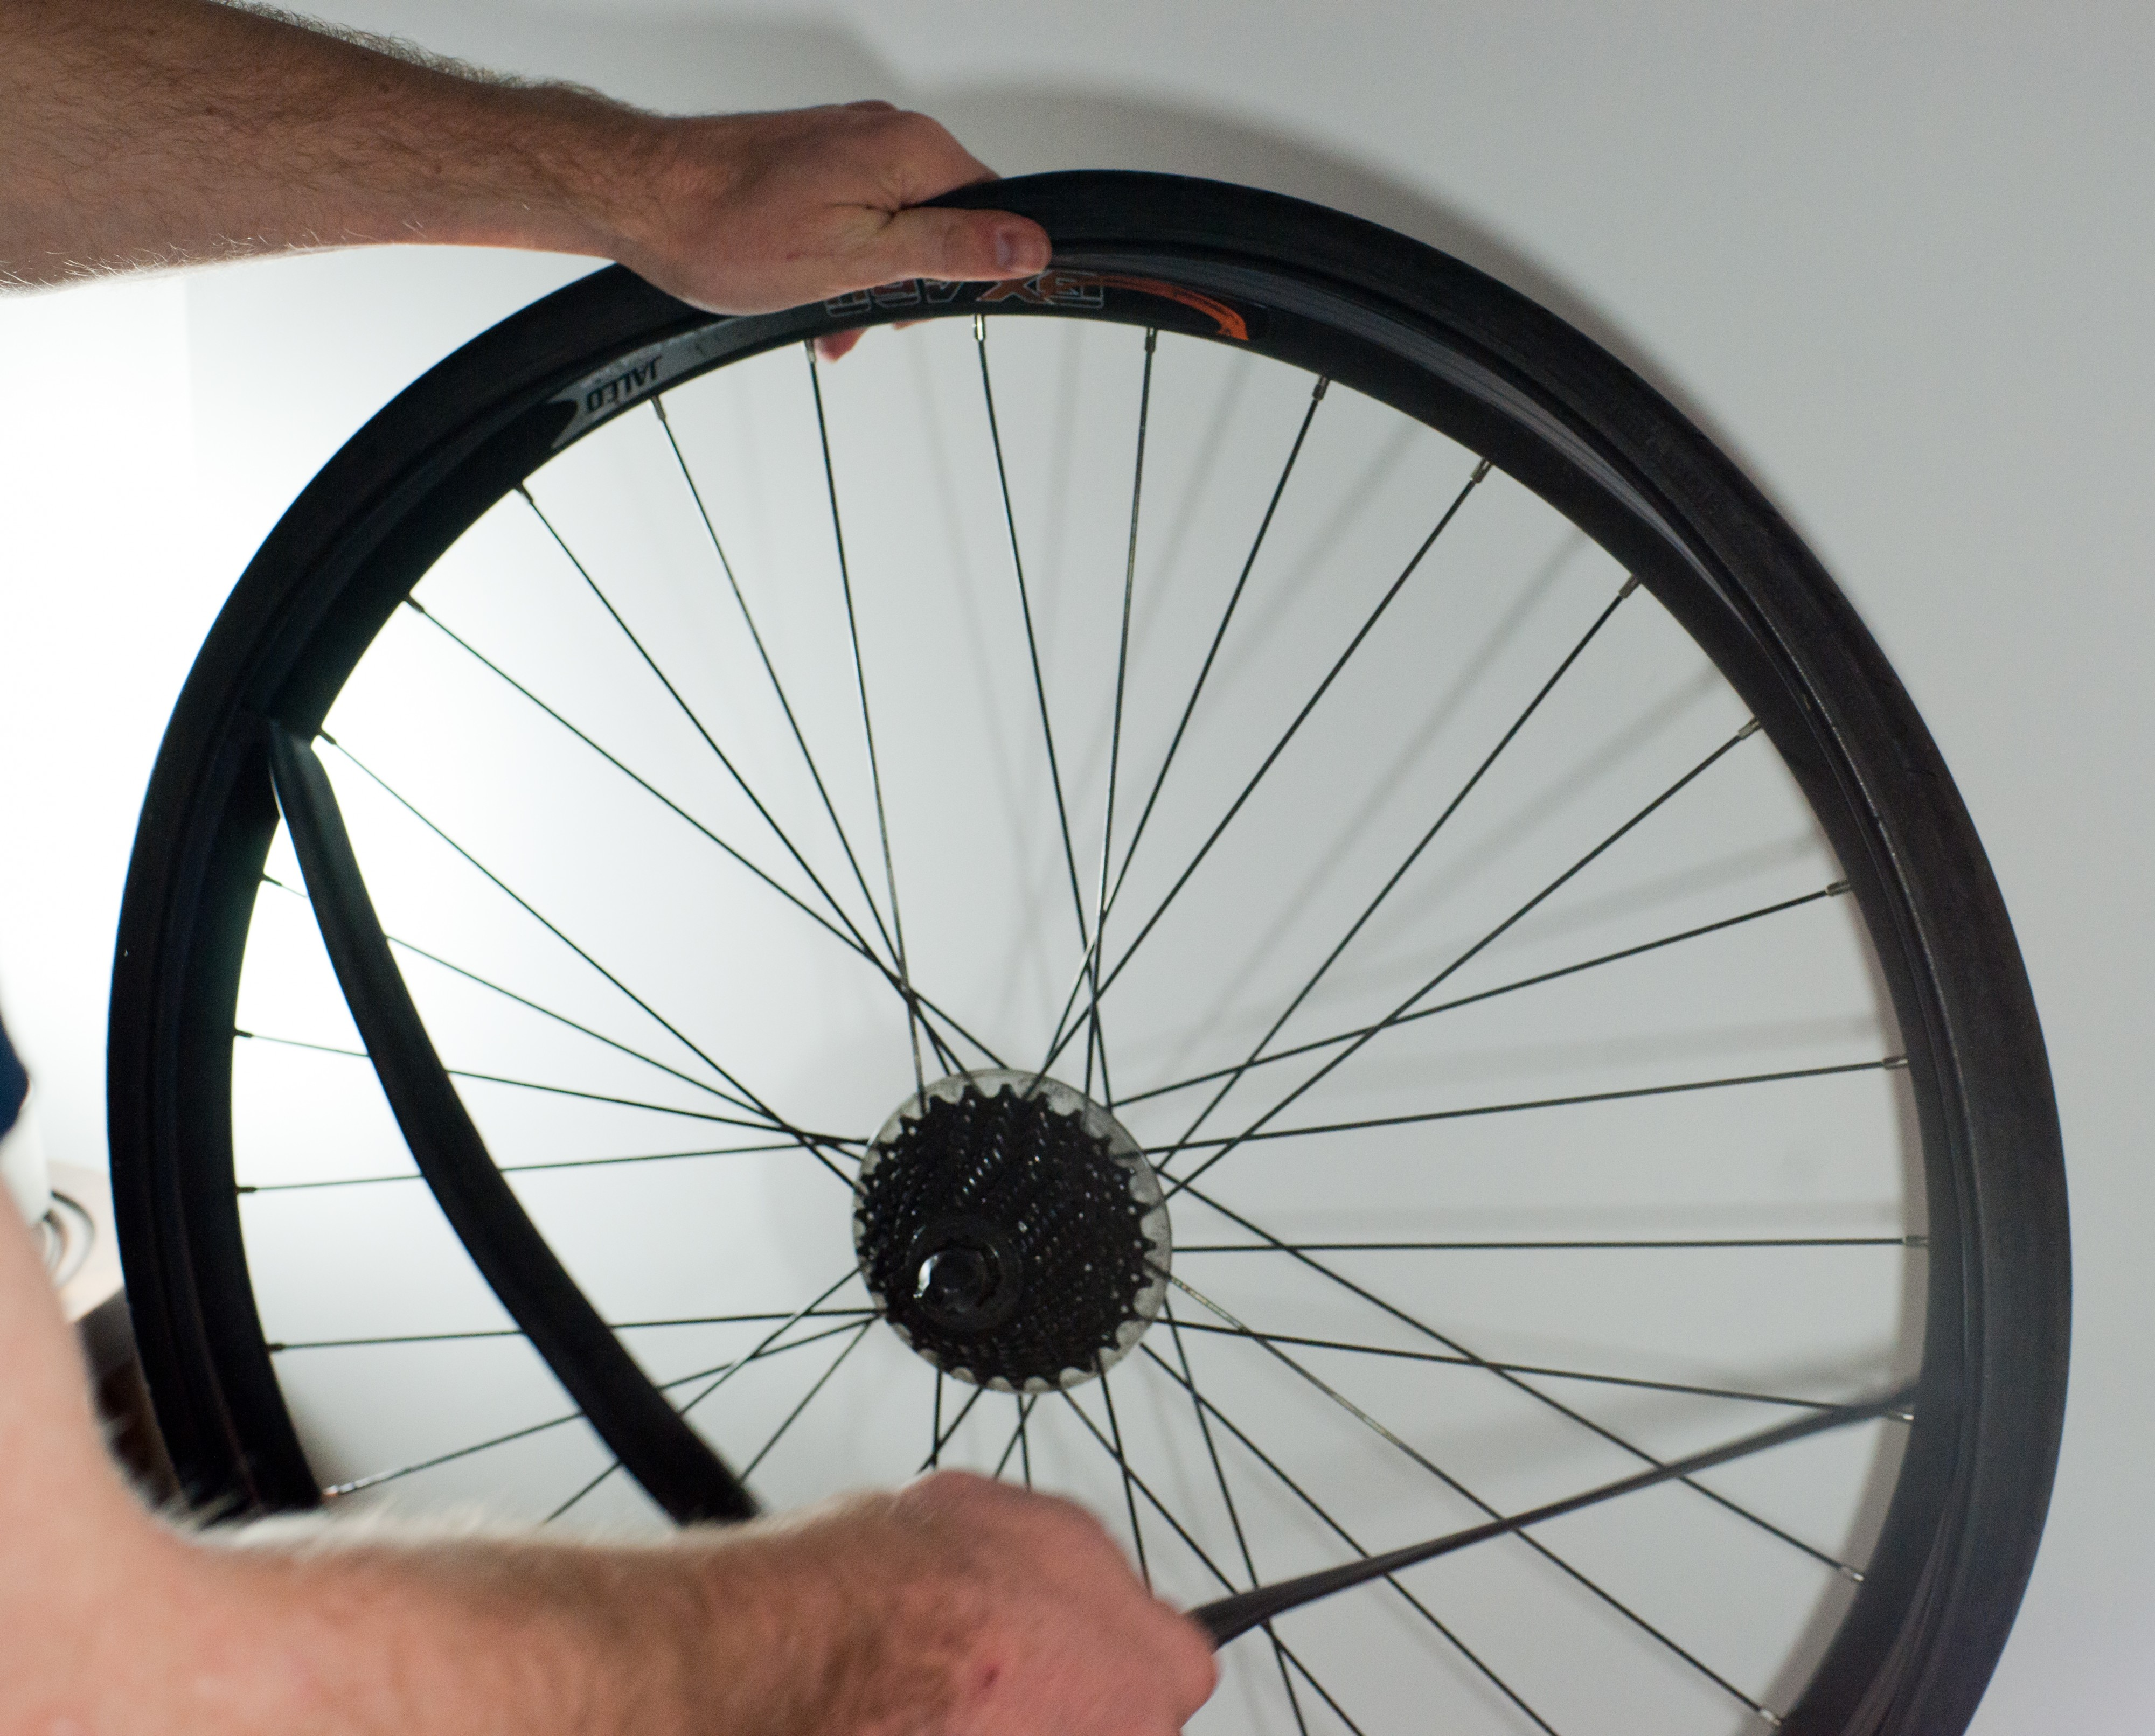 Changing an inner tube - Removing the tube (2)